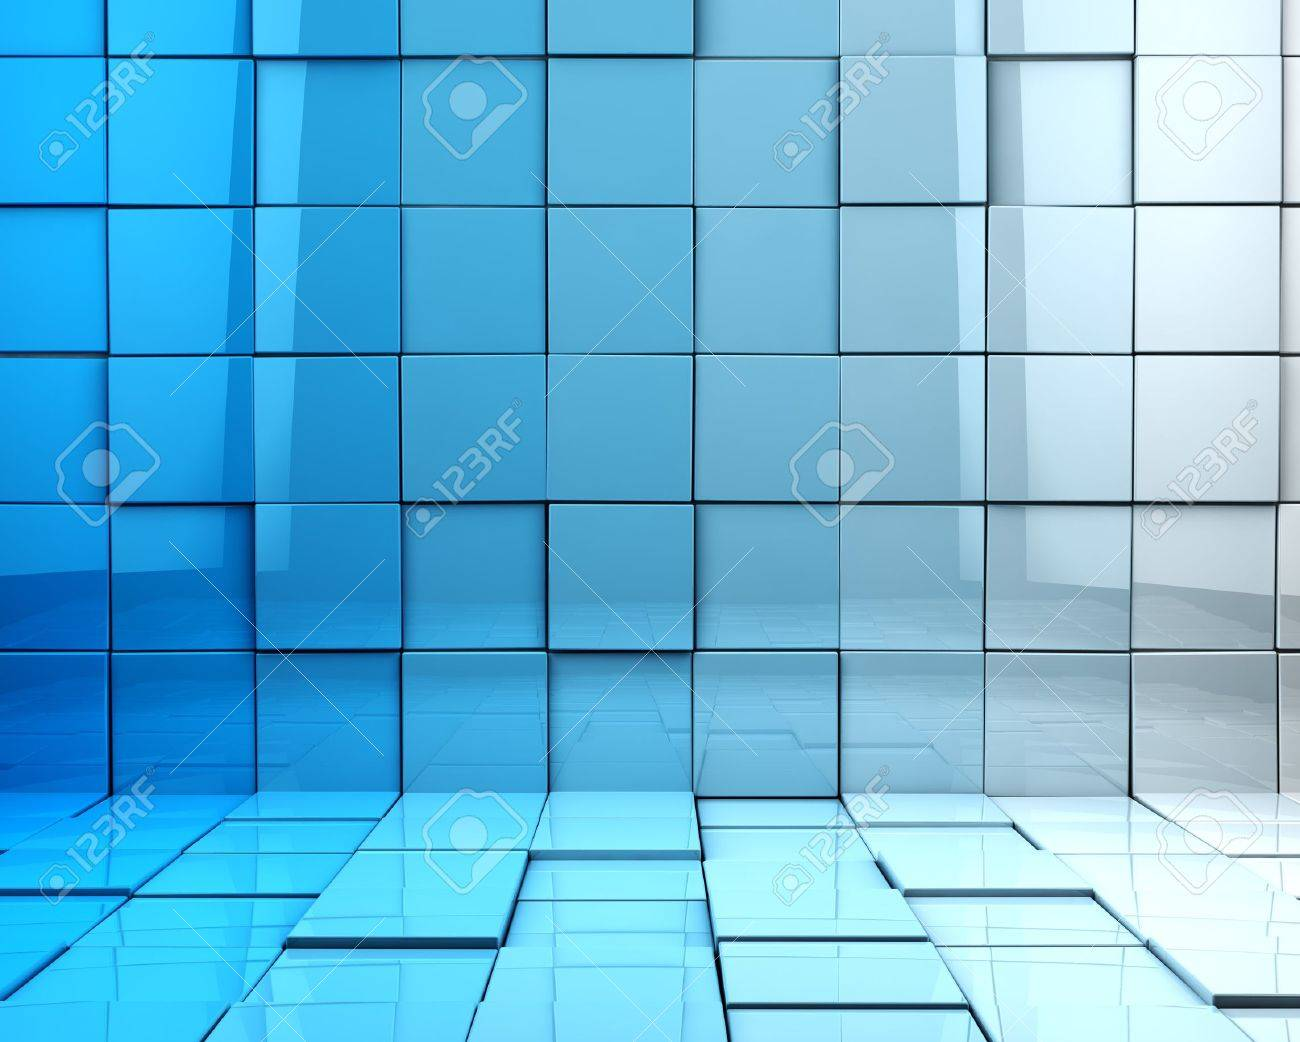 Abstract 3d cubes background in blue toned - 18586050